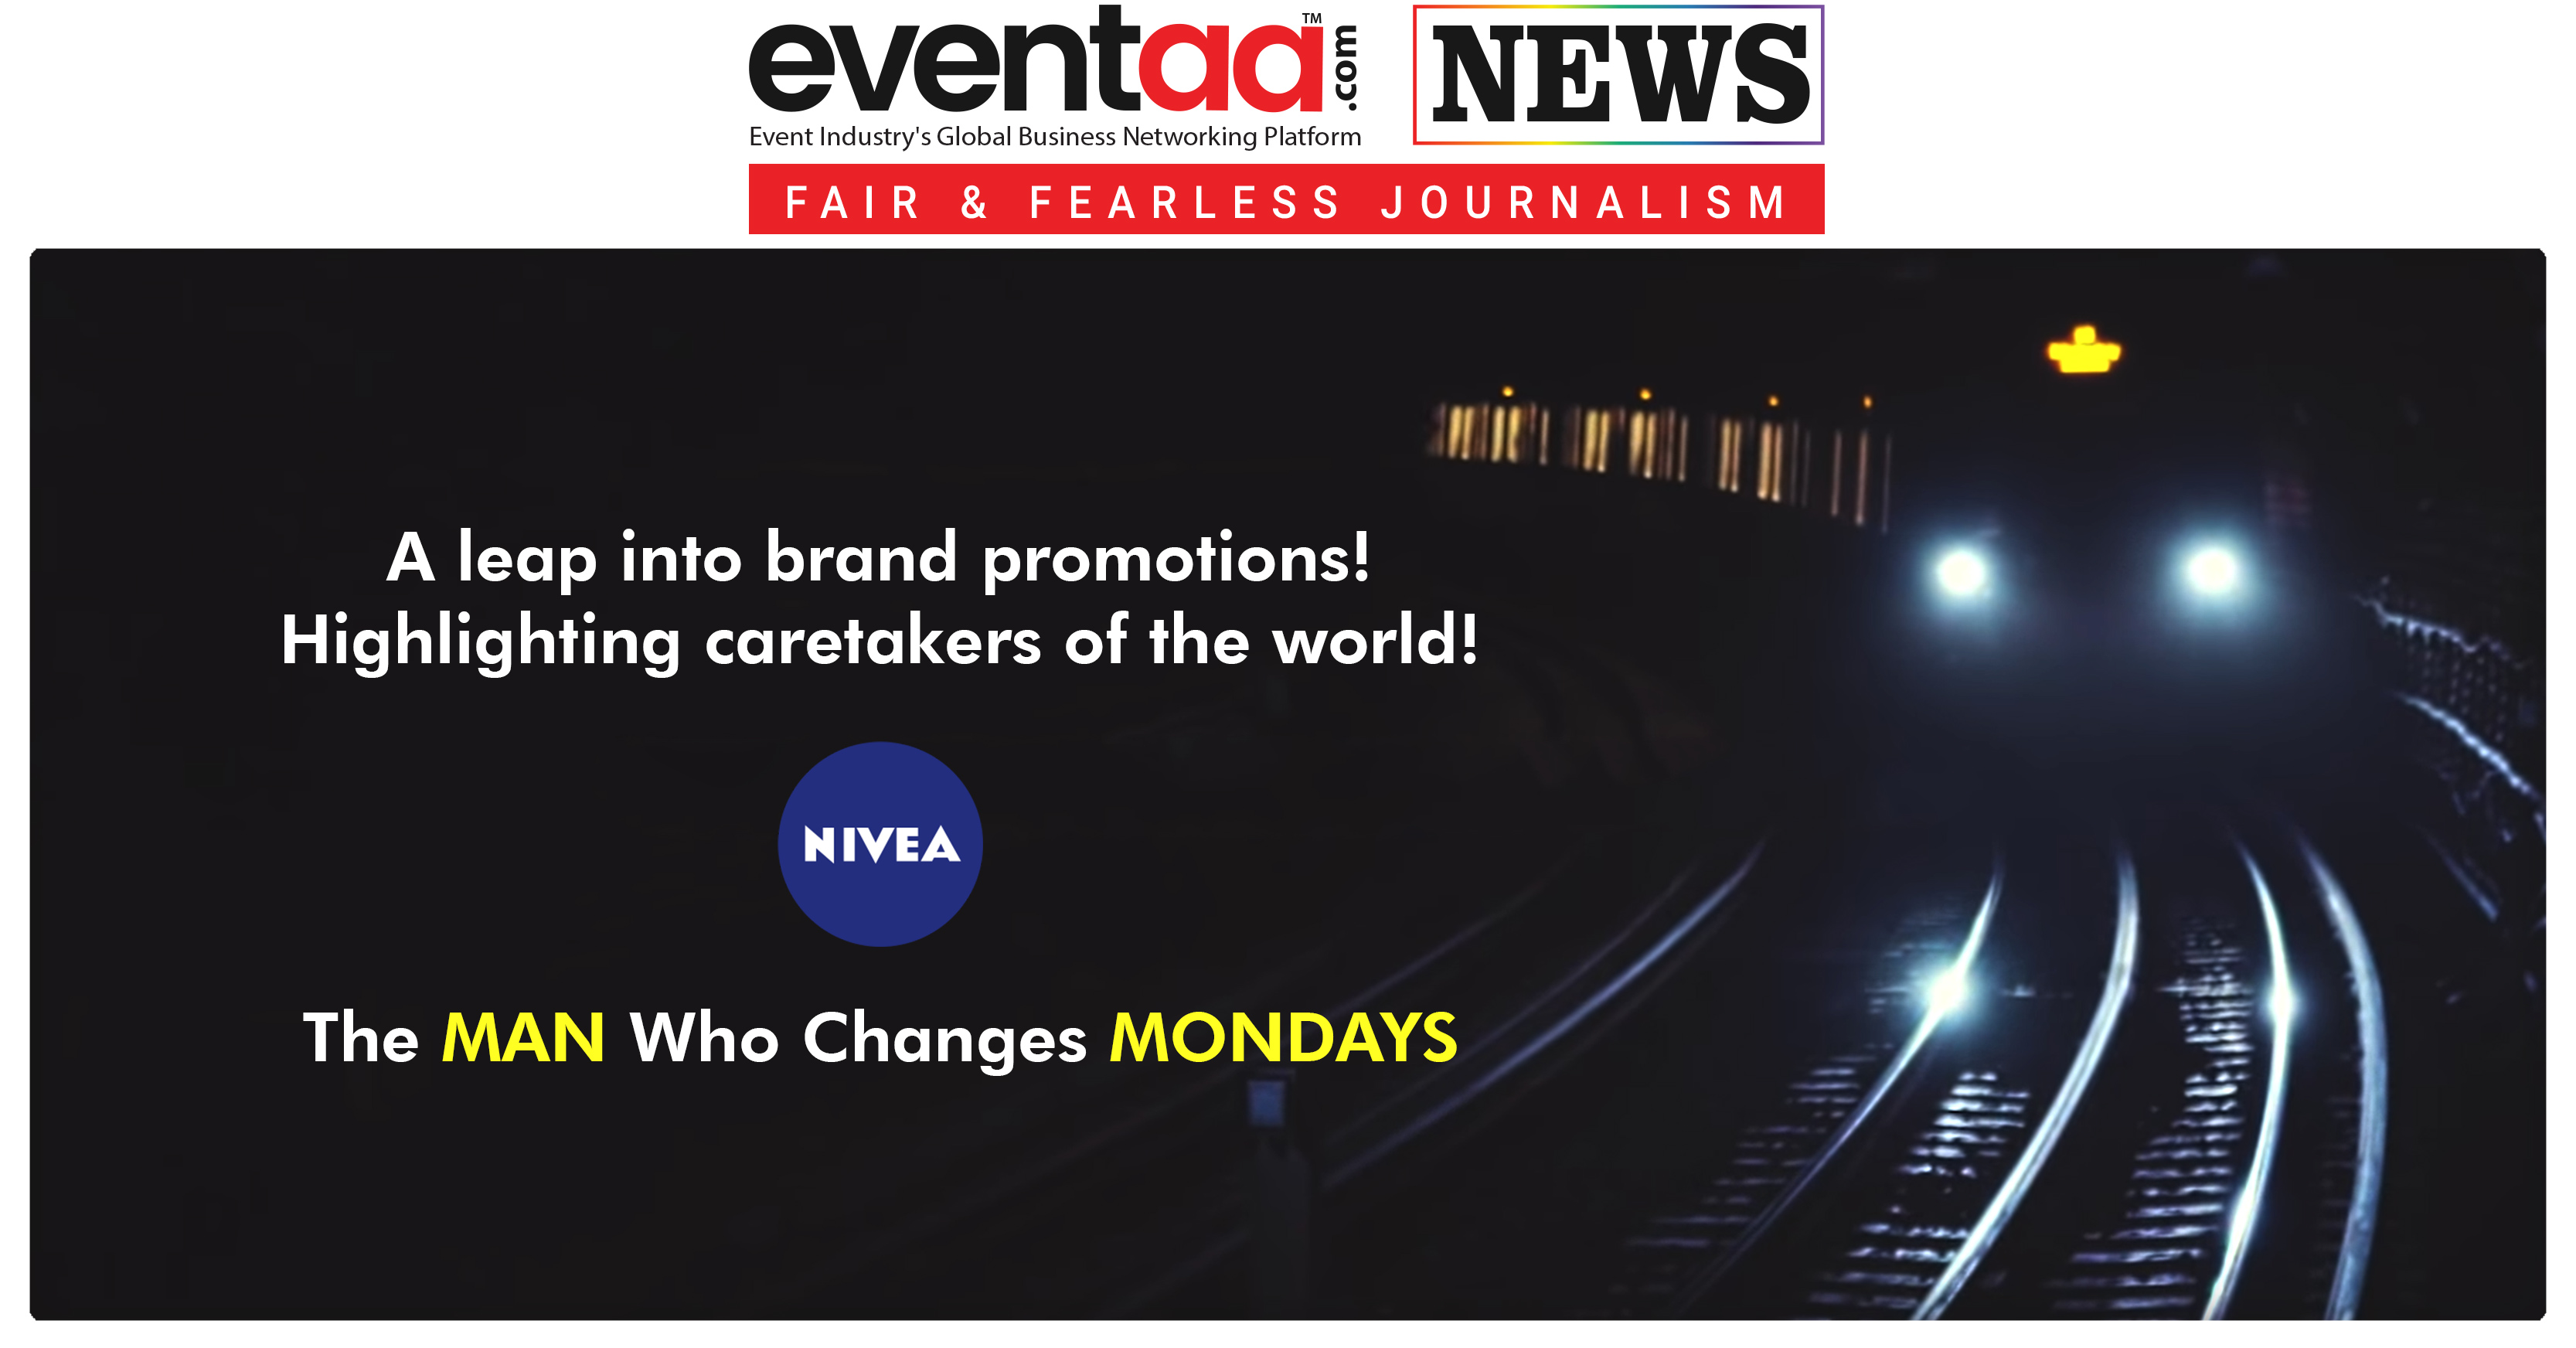 A leap into brand promotions! Highlighting caretakers of the world! Nivea Healthcare!